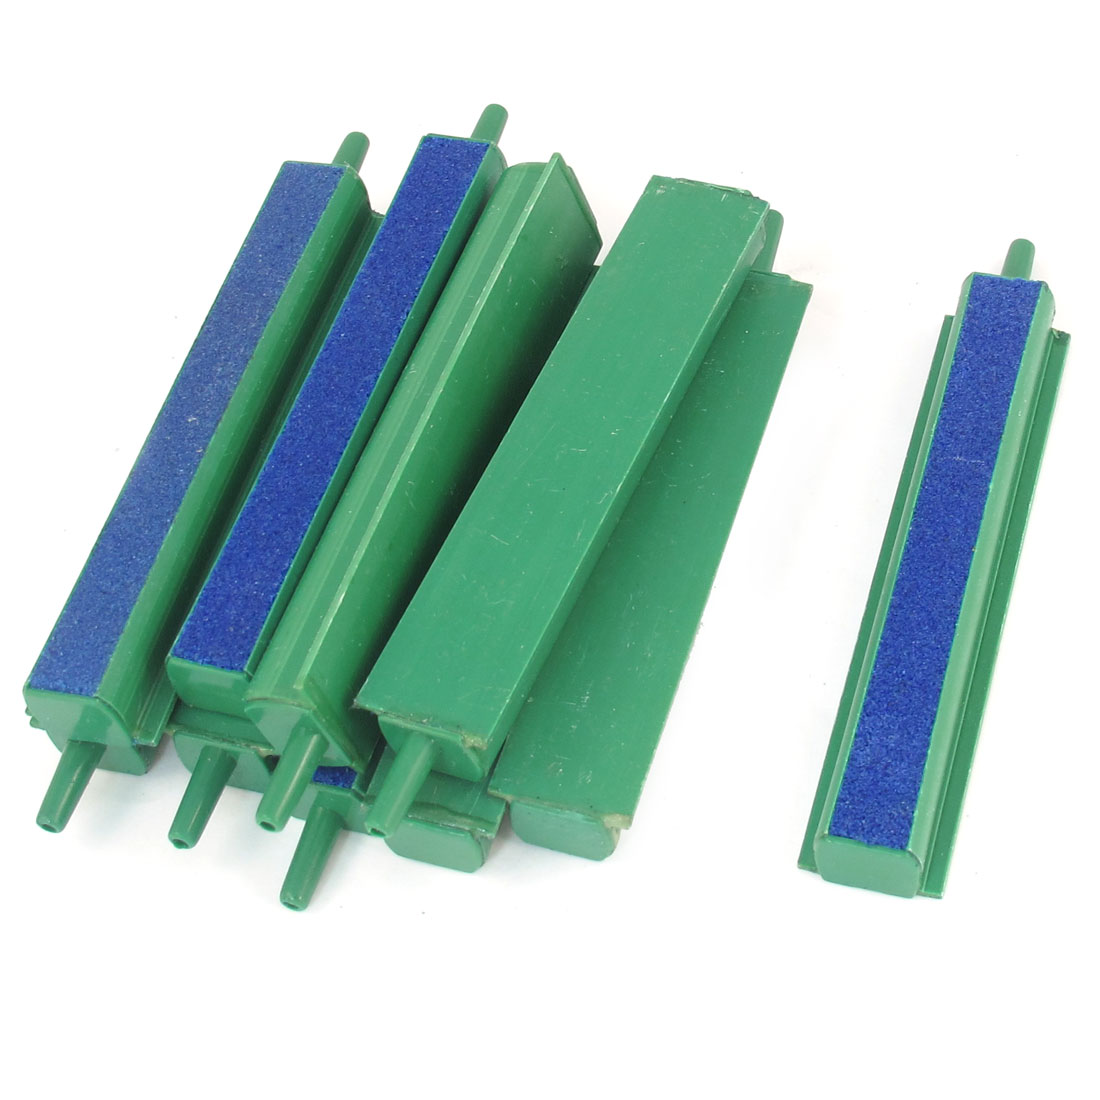 "10 Pcs Aquarium Fish Tank Air Bubble Release Airstone Bar 3.9"" Green Blue"